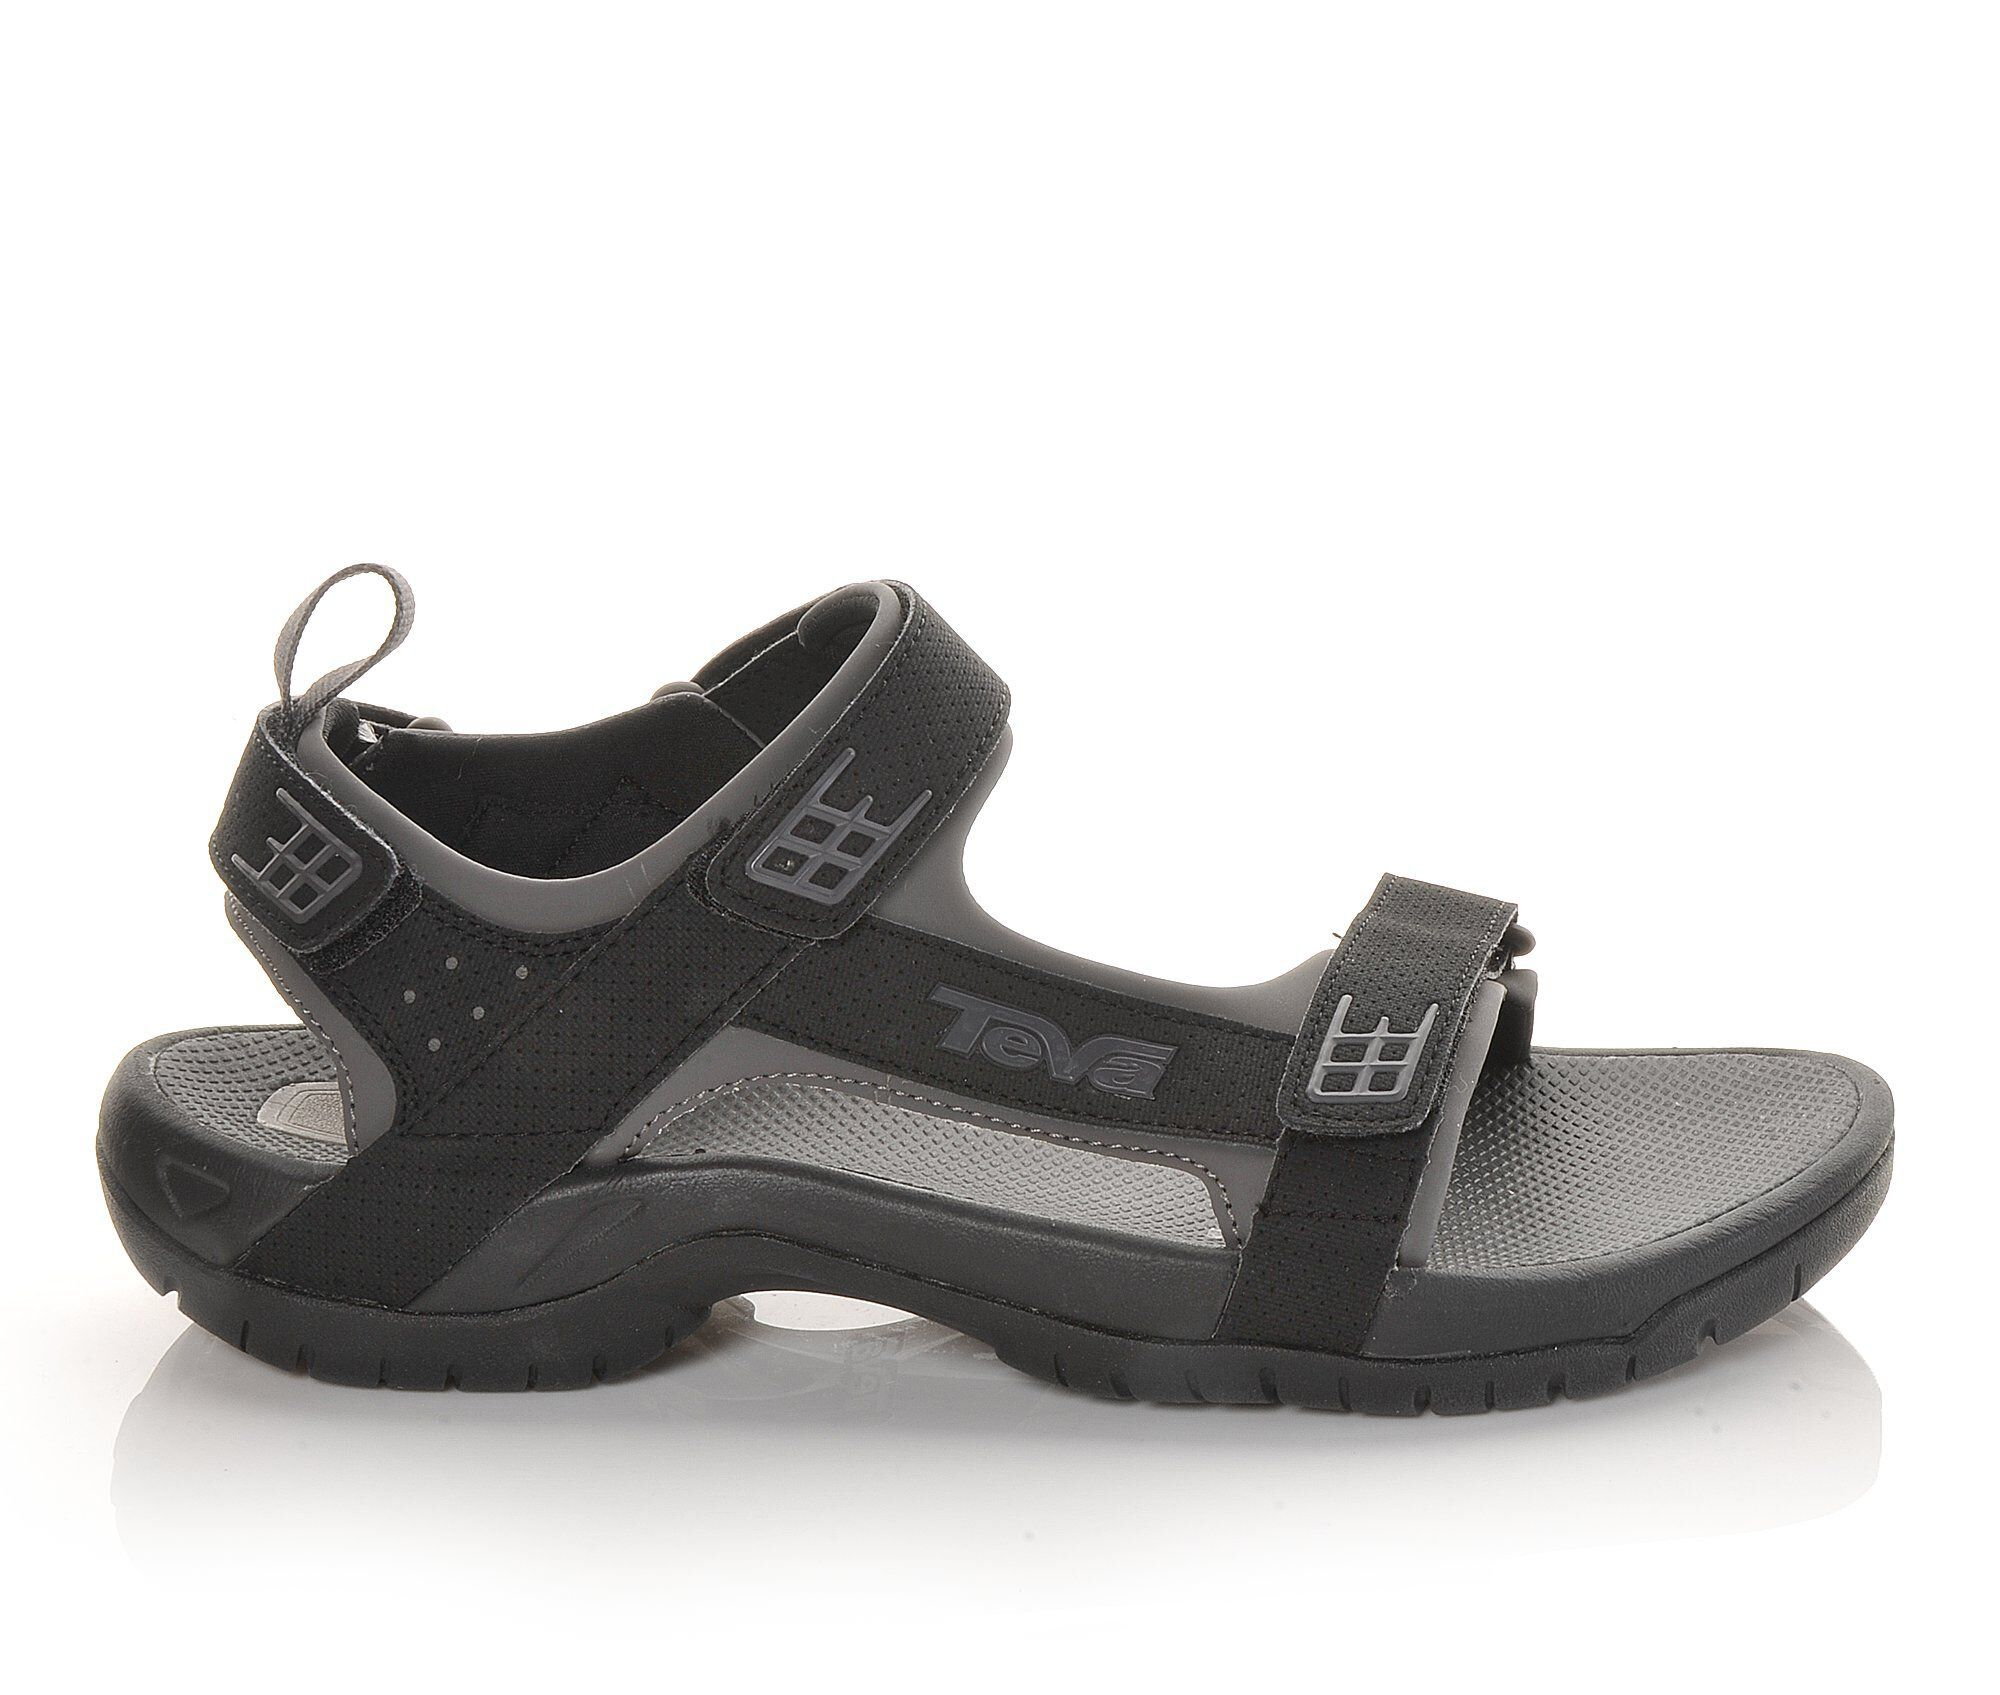 Recently Launched Men's Teva Minam Hiking Sandals Black